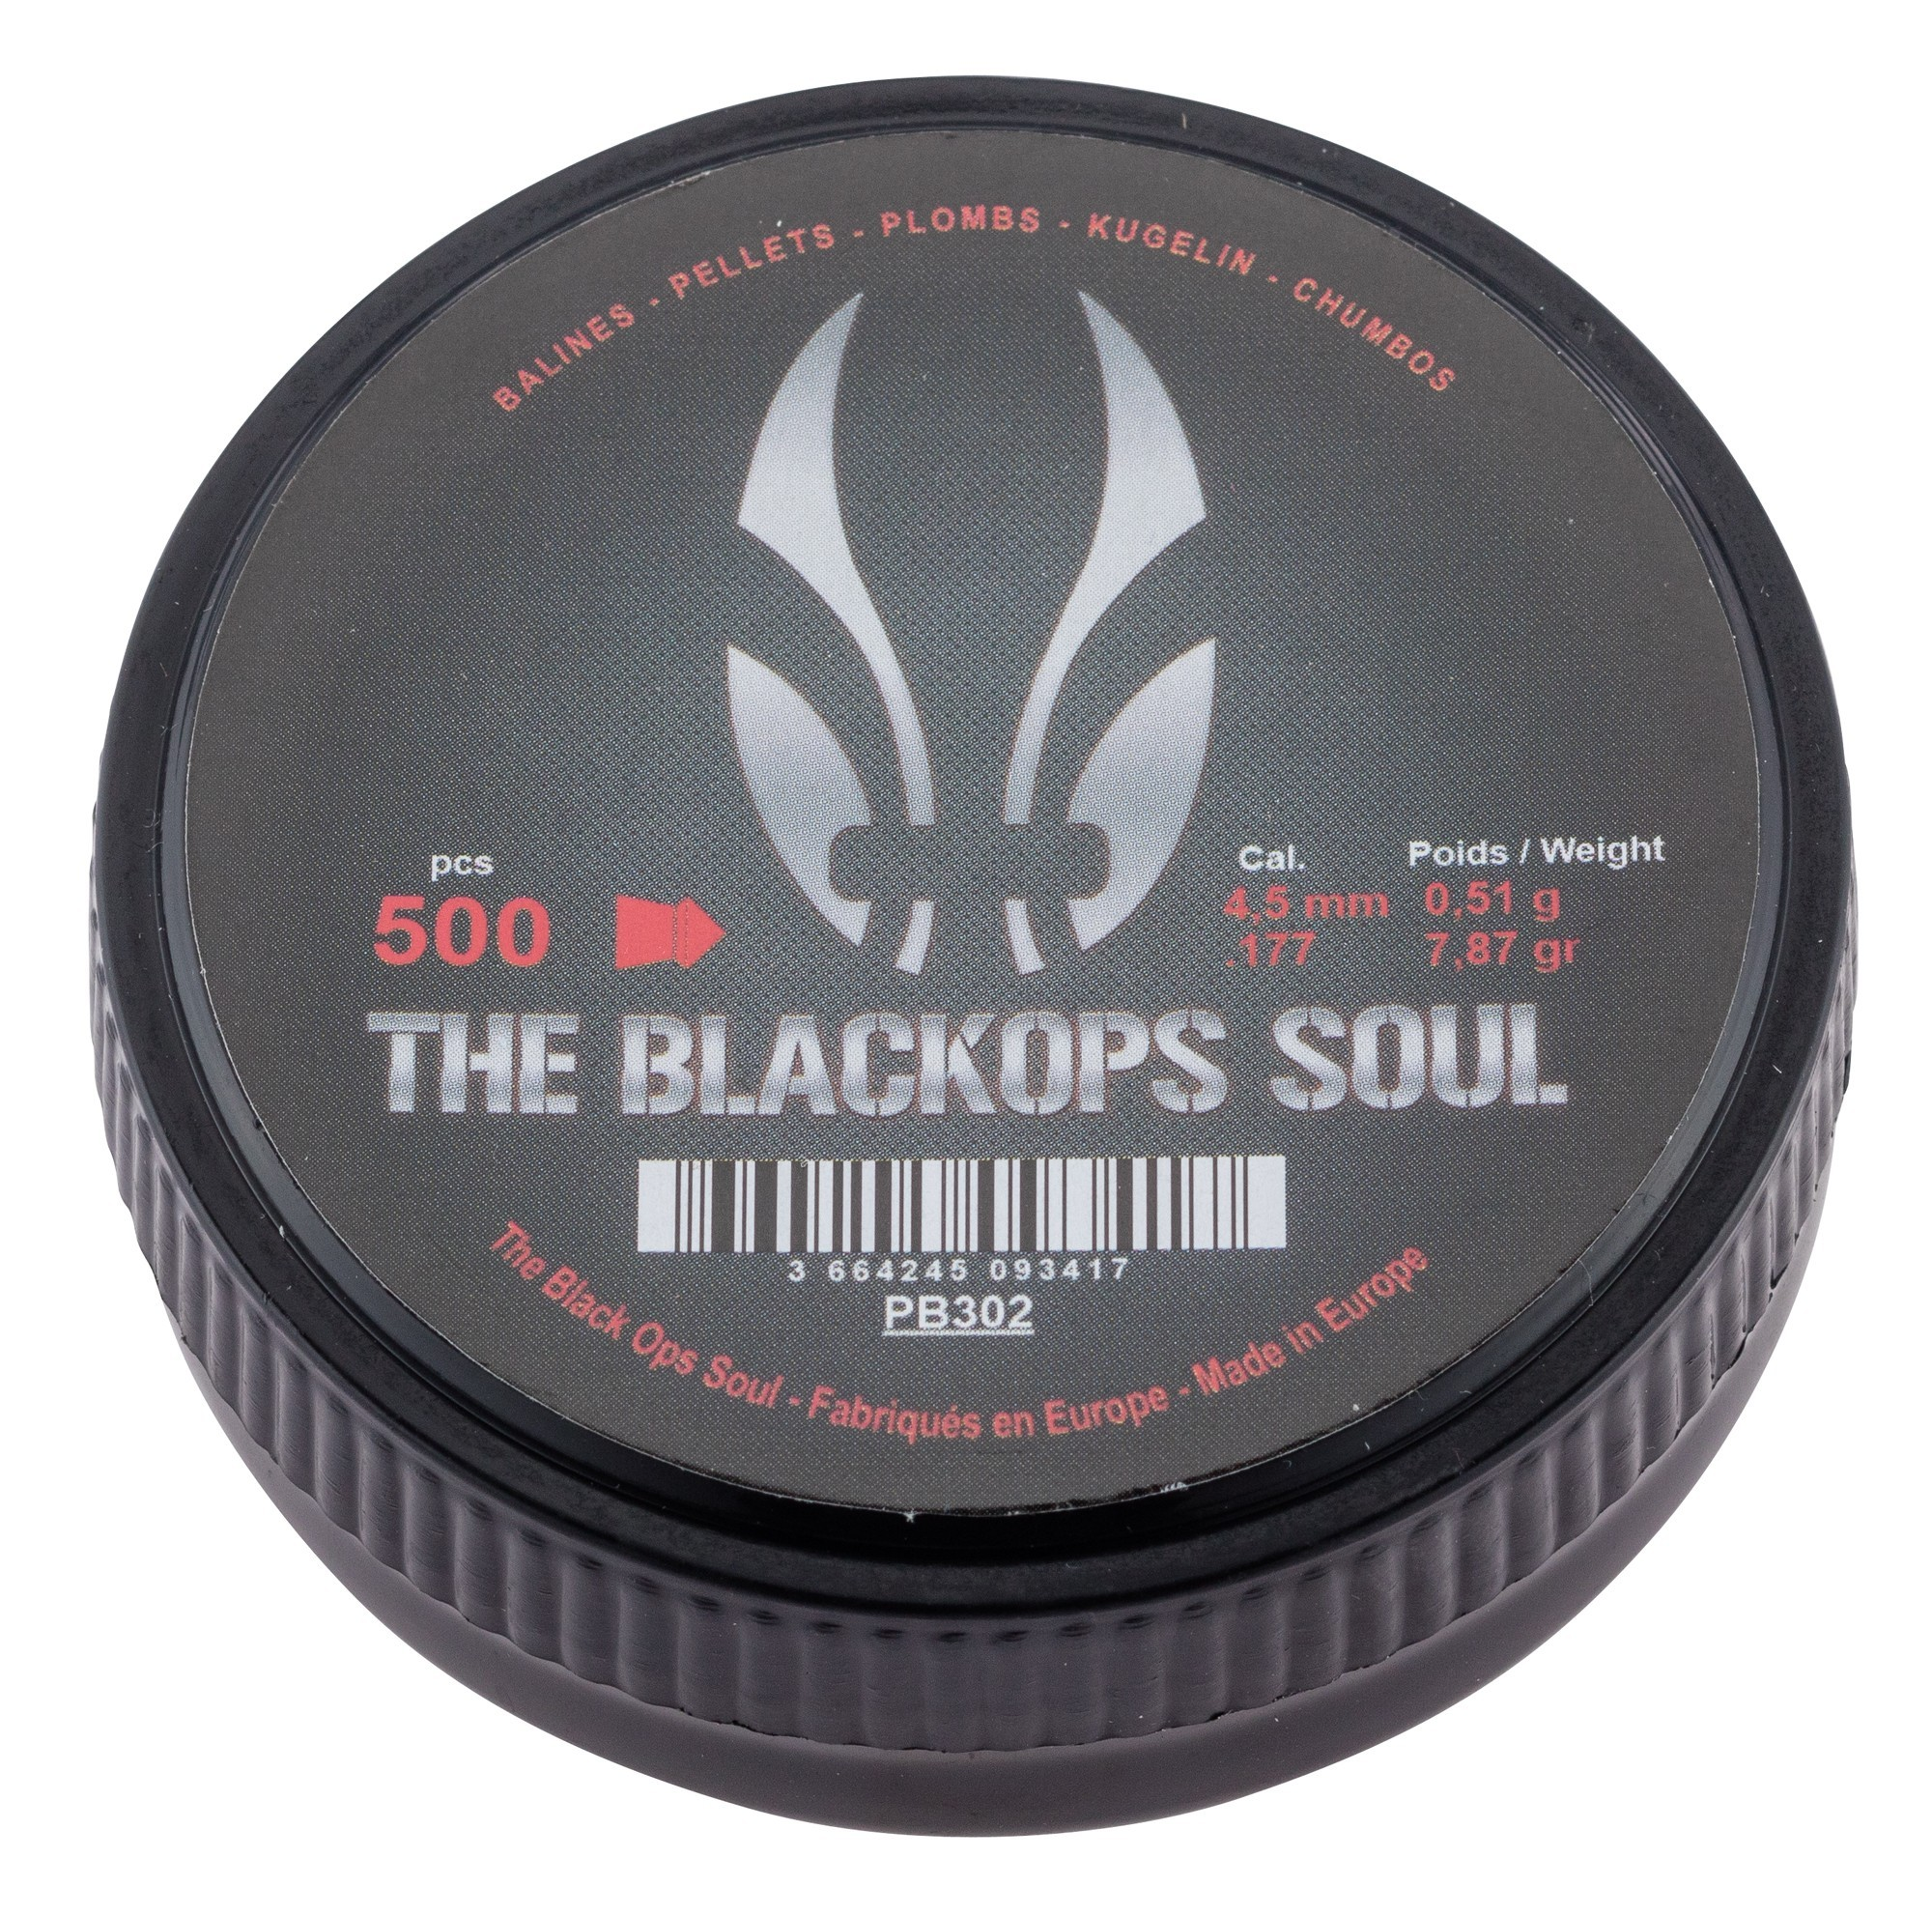 Photo BO Manufacture The Black Ops Soul Pointed pellets Cal. 4.5 mm